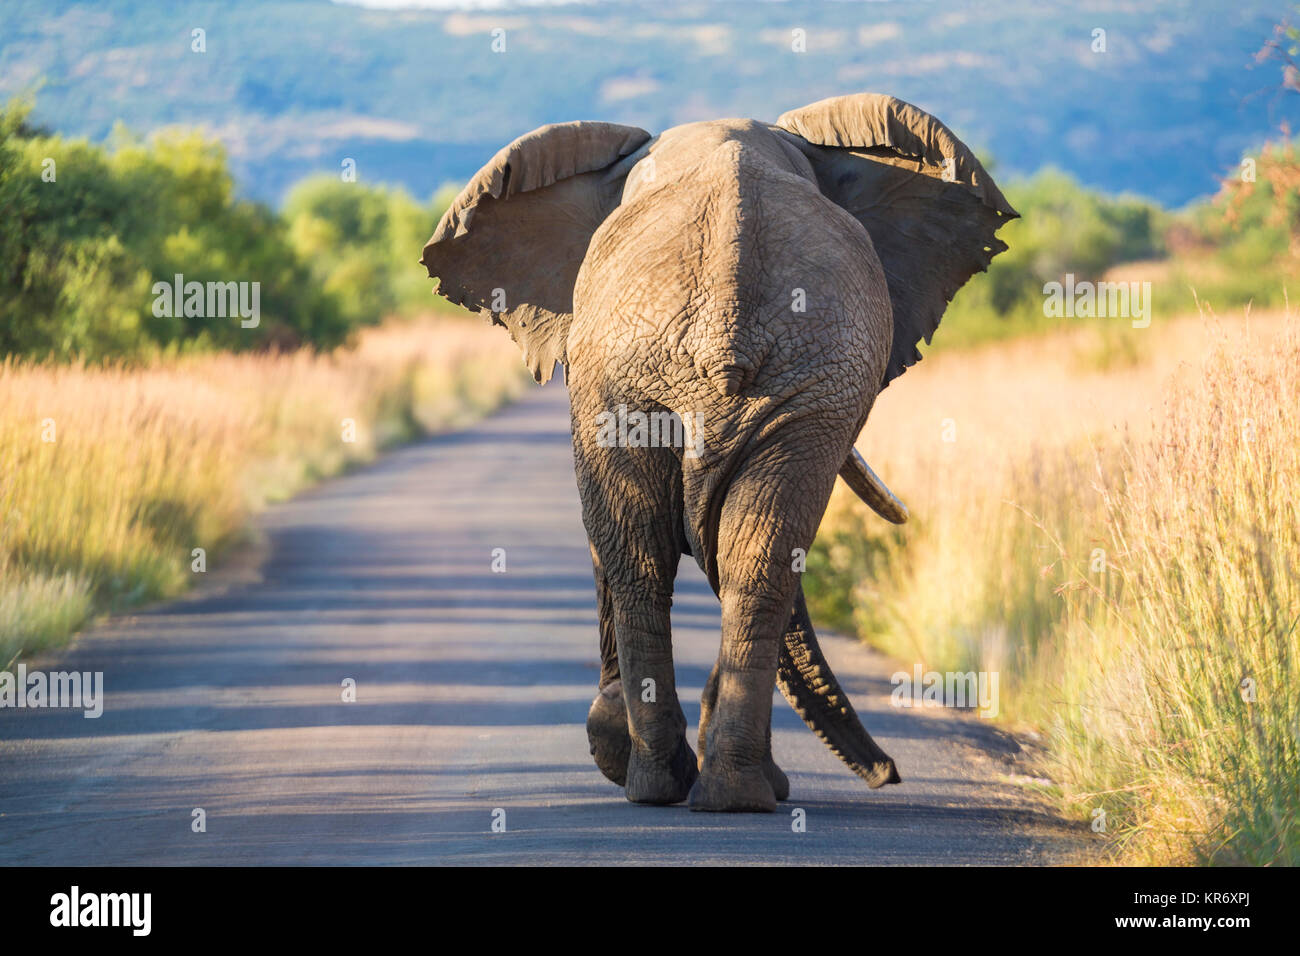 Rear view of African Elephant walking along a rural road. - Stock Image